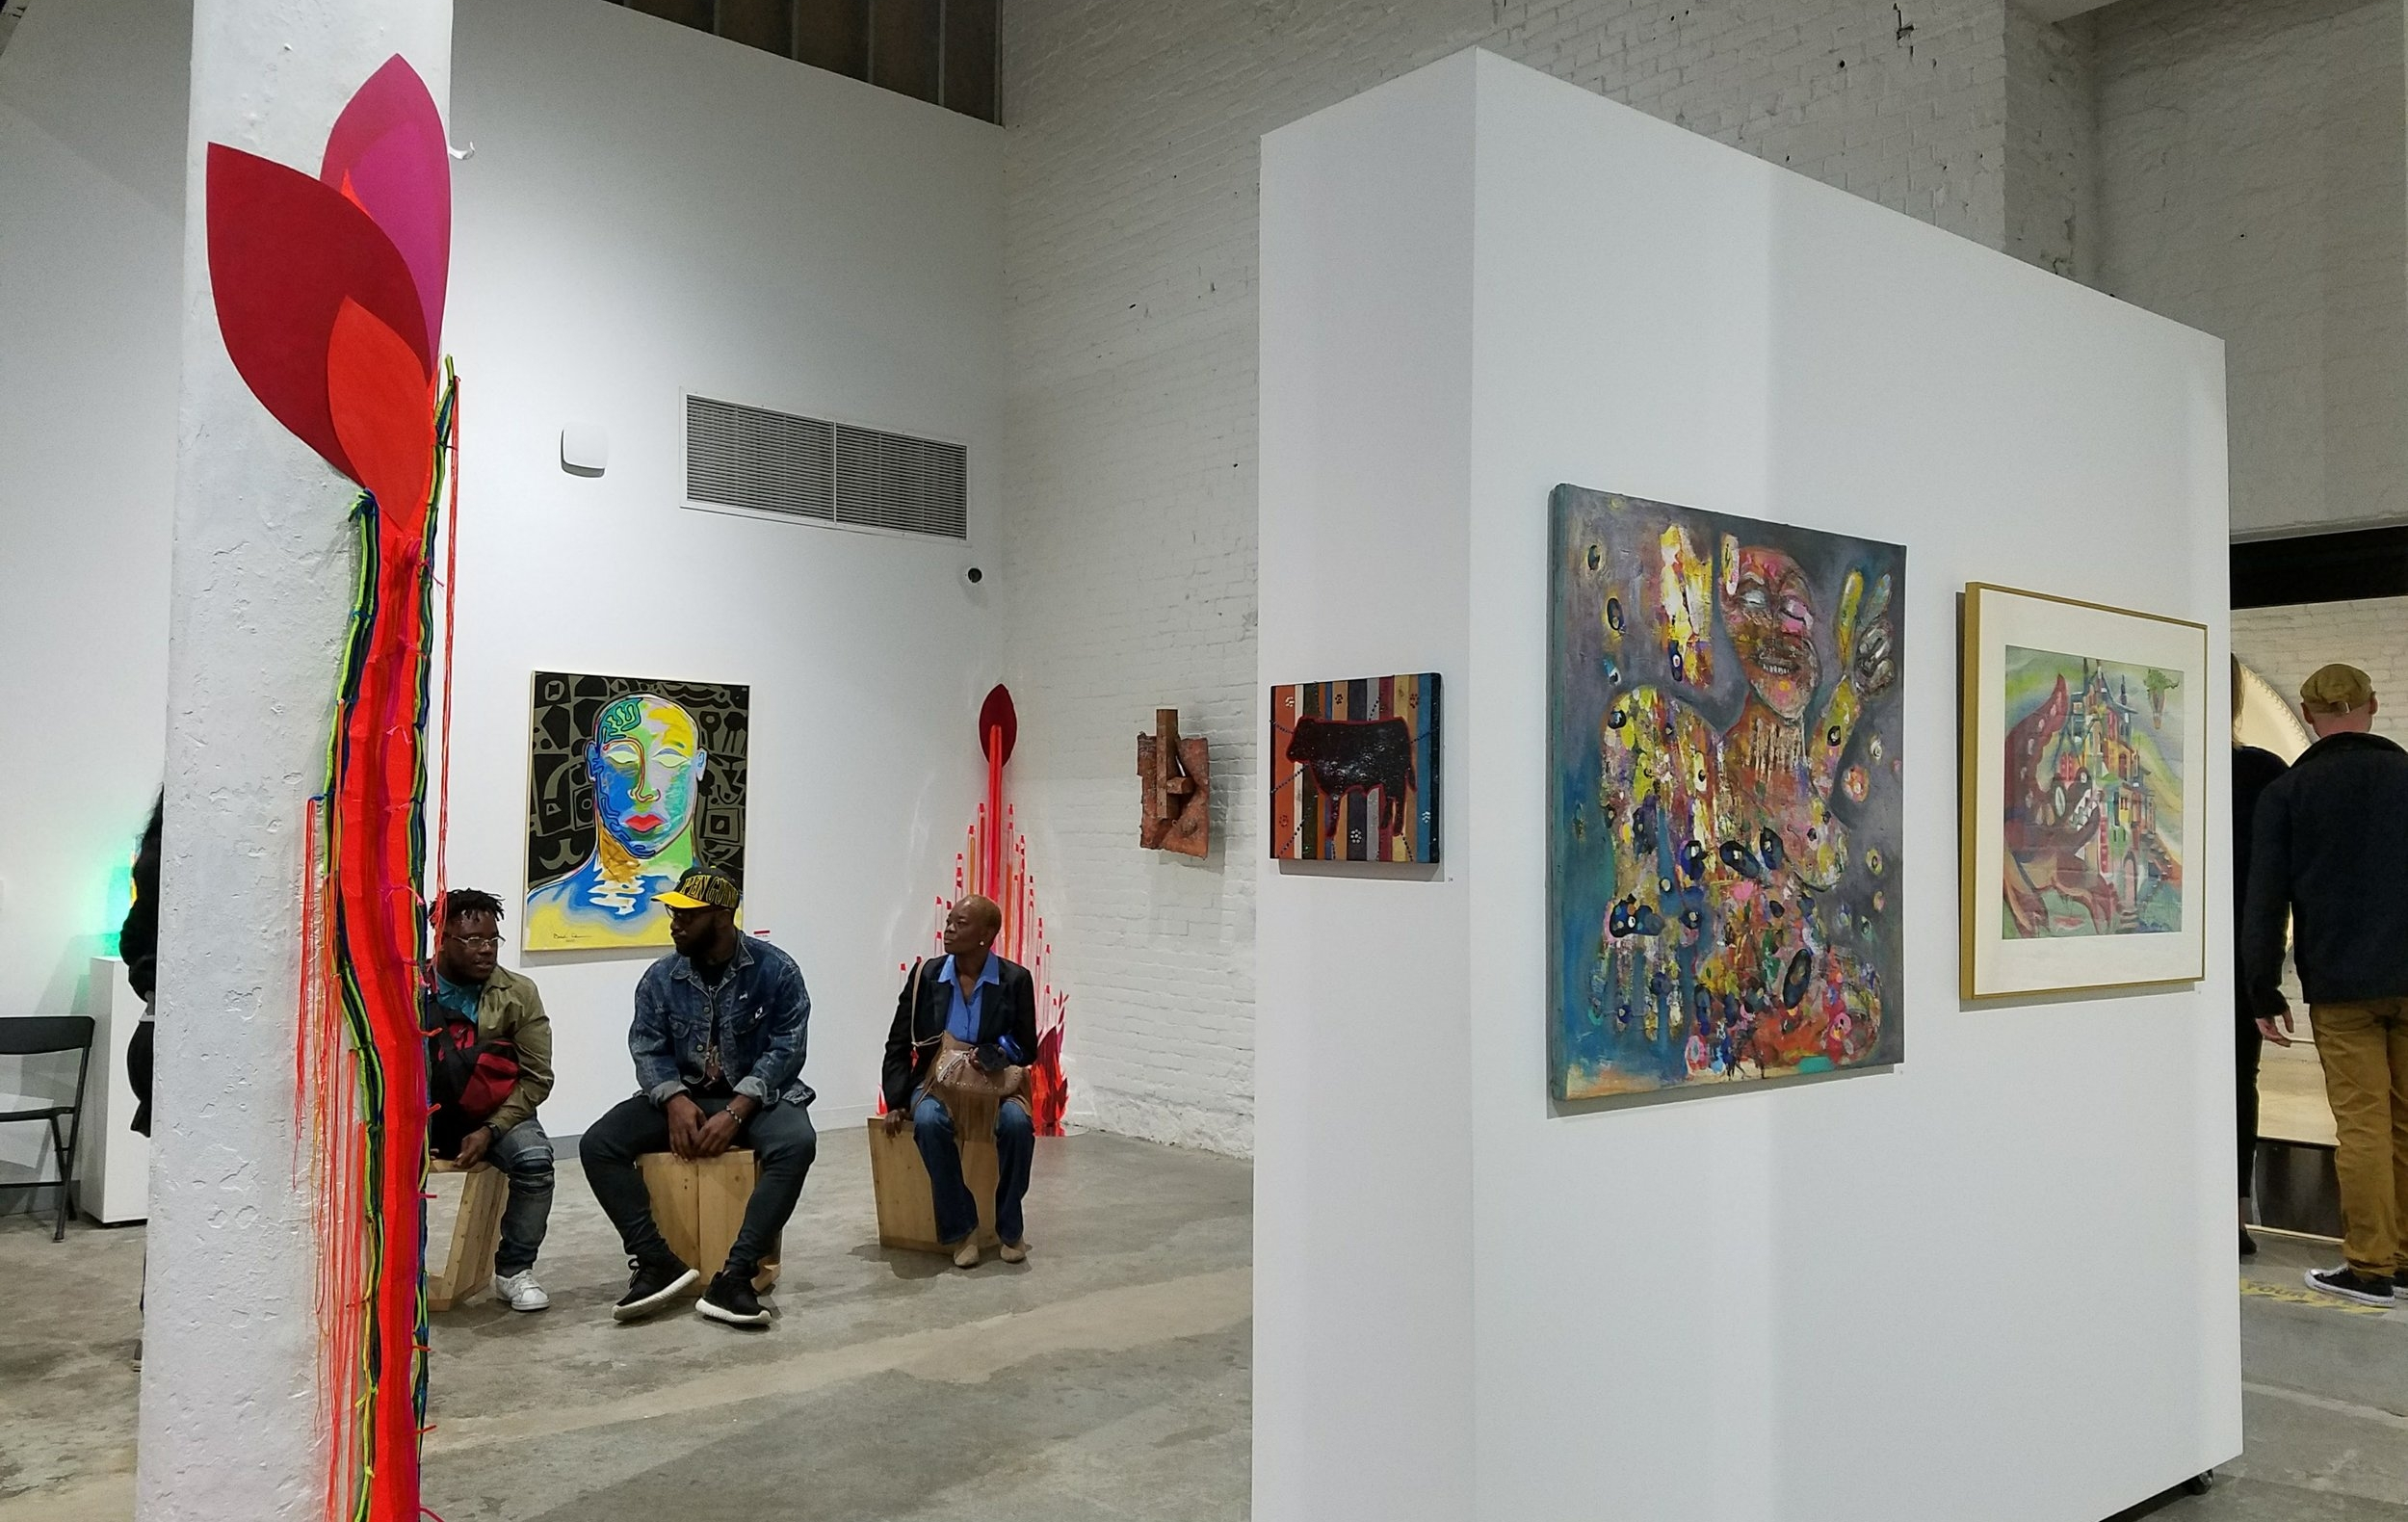 Electric Kool-Aid   October 5- November 26, 2017  The Brew House Association  Curated by Corey Carrington Featuring: Priya Ahlawat, Patricia Barefoot, Pati Beachley, Christie Biber, Kathy Boykowycz, Lauren Braun, Yang Cai, Ron Copeland, Sheila Cuellar-Shaffer, Brendan Donovan, Christopher Duncan, Ashley Garner, Annie Heisey, Ryder Henry, Lori Hepner, Robert Howsare, Seth LeDonne, Lesla, Ken Merget, Clayton Merrell, Marina Mozhayeva, Desiree Palermo, Mark Panza, Linda Price-Sneddon, Jack Puglisi, Janice Schuler, Phiris Kathryn Sickels, Louise Silk, Joyce Werwie Perry, and Kathleen Zimbicki